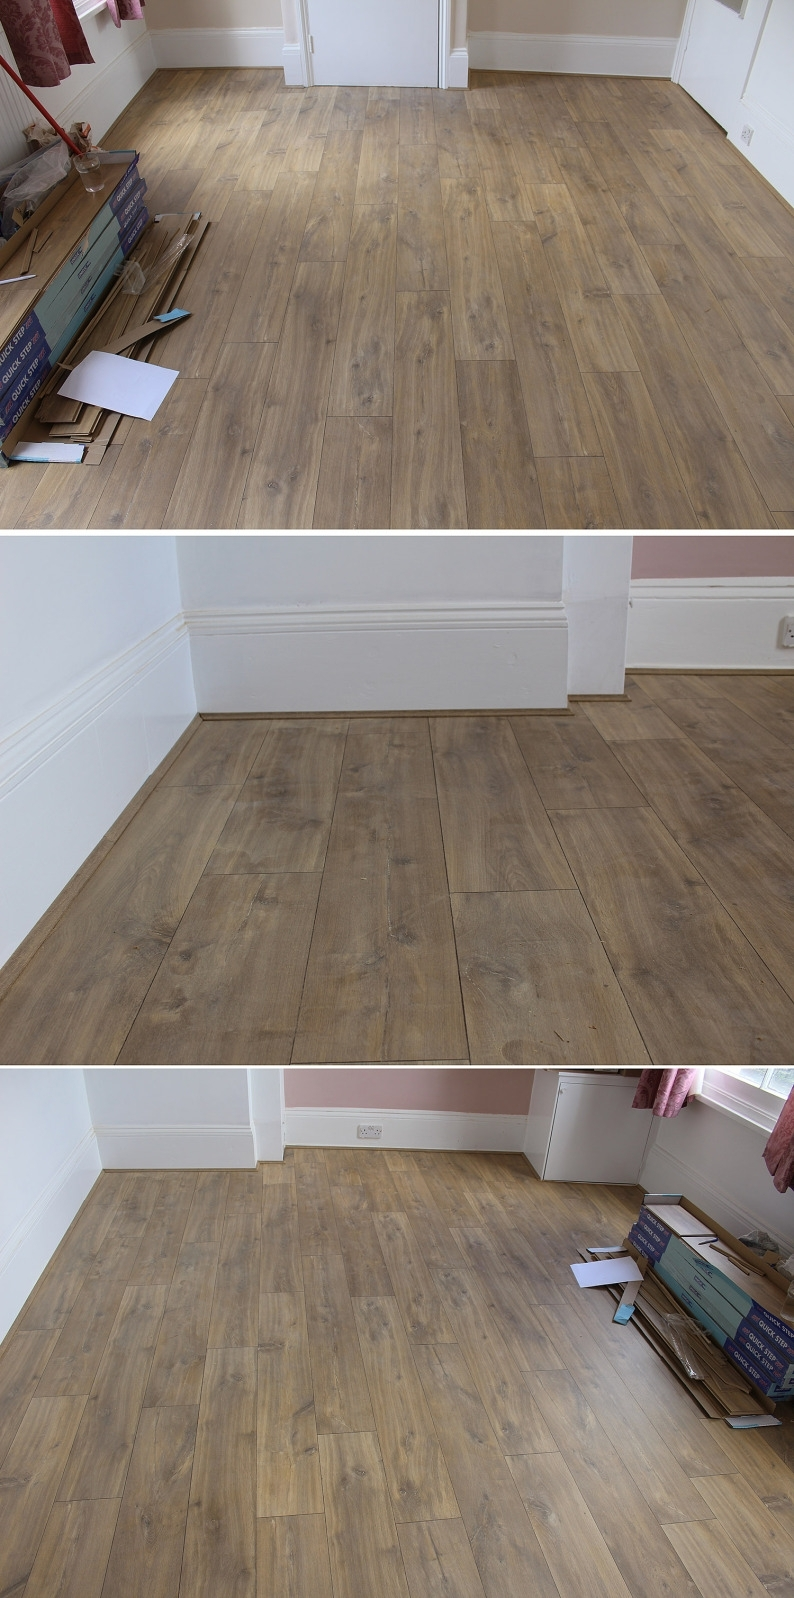 Homebase Wood Flooring Underlay